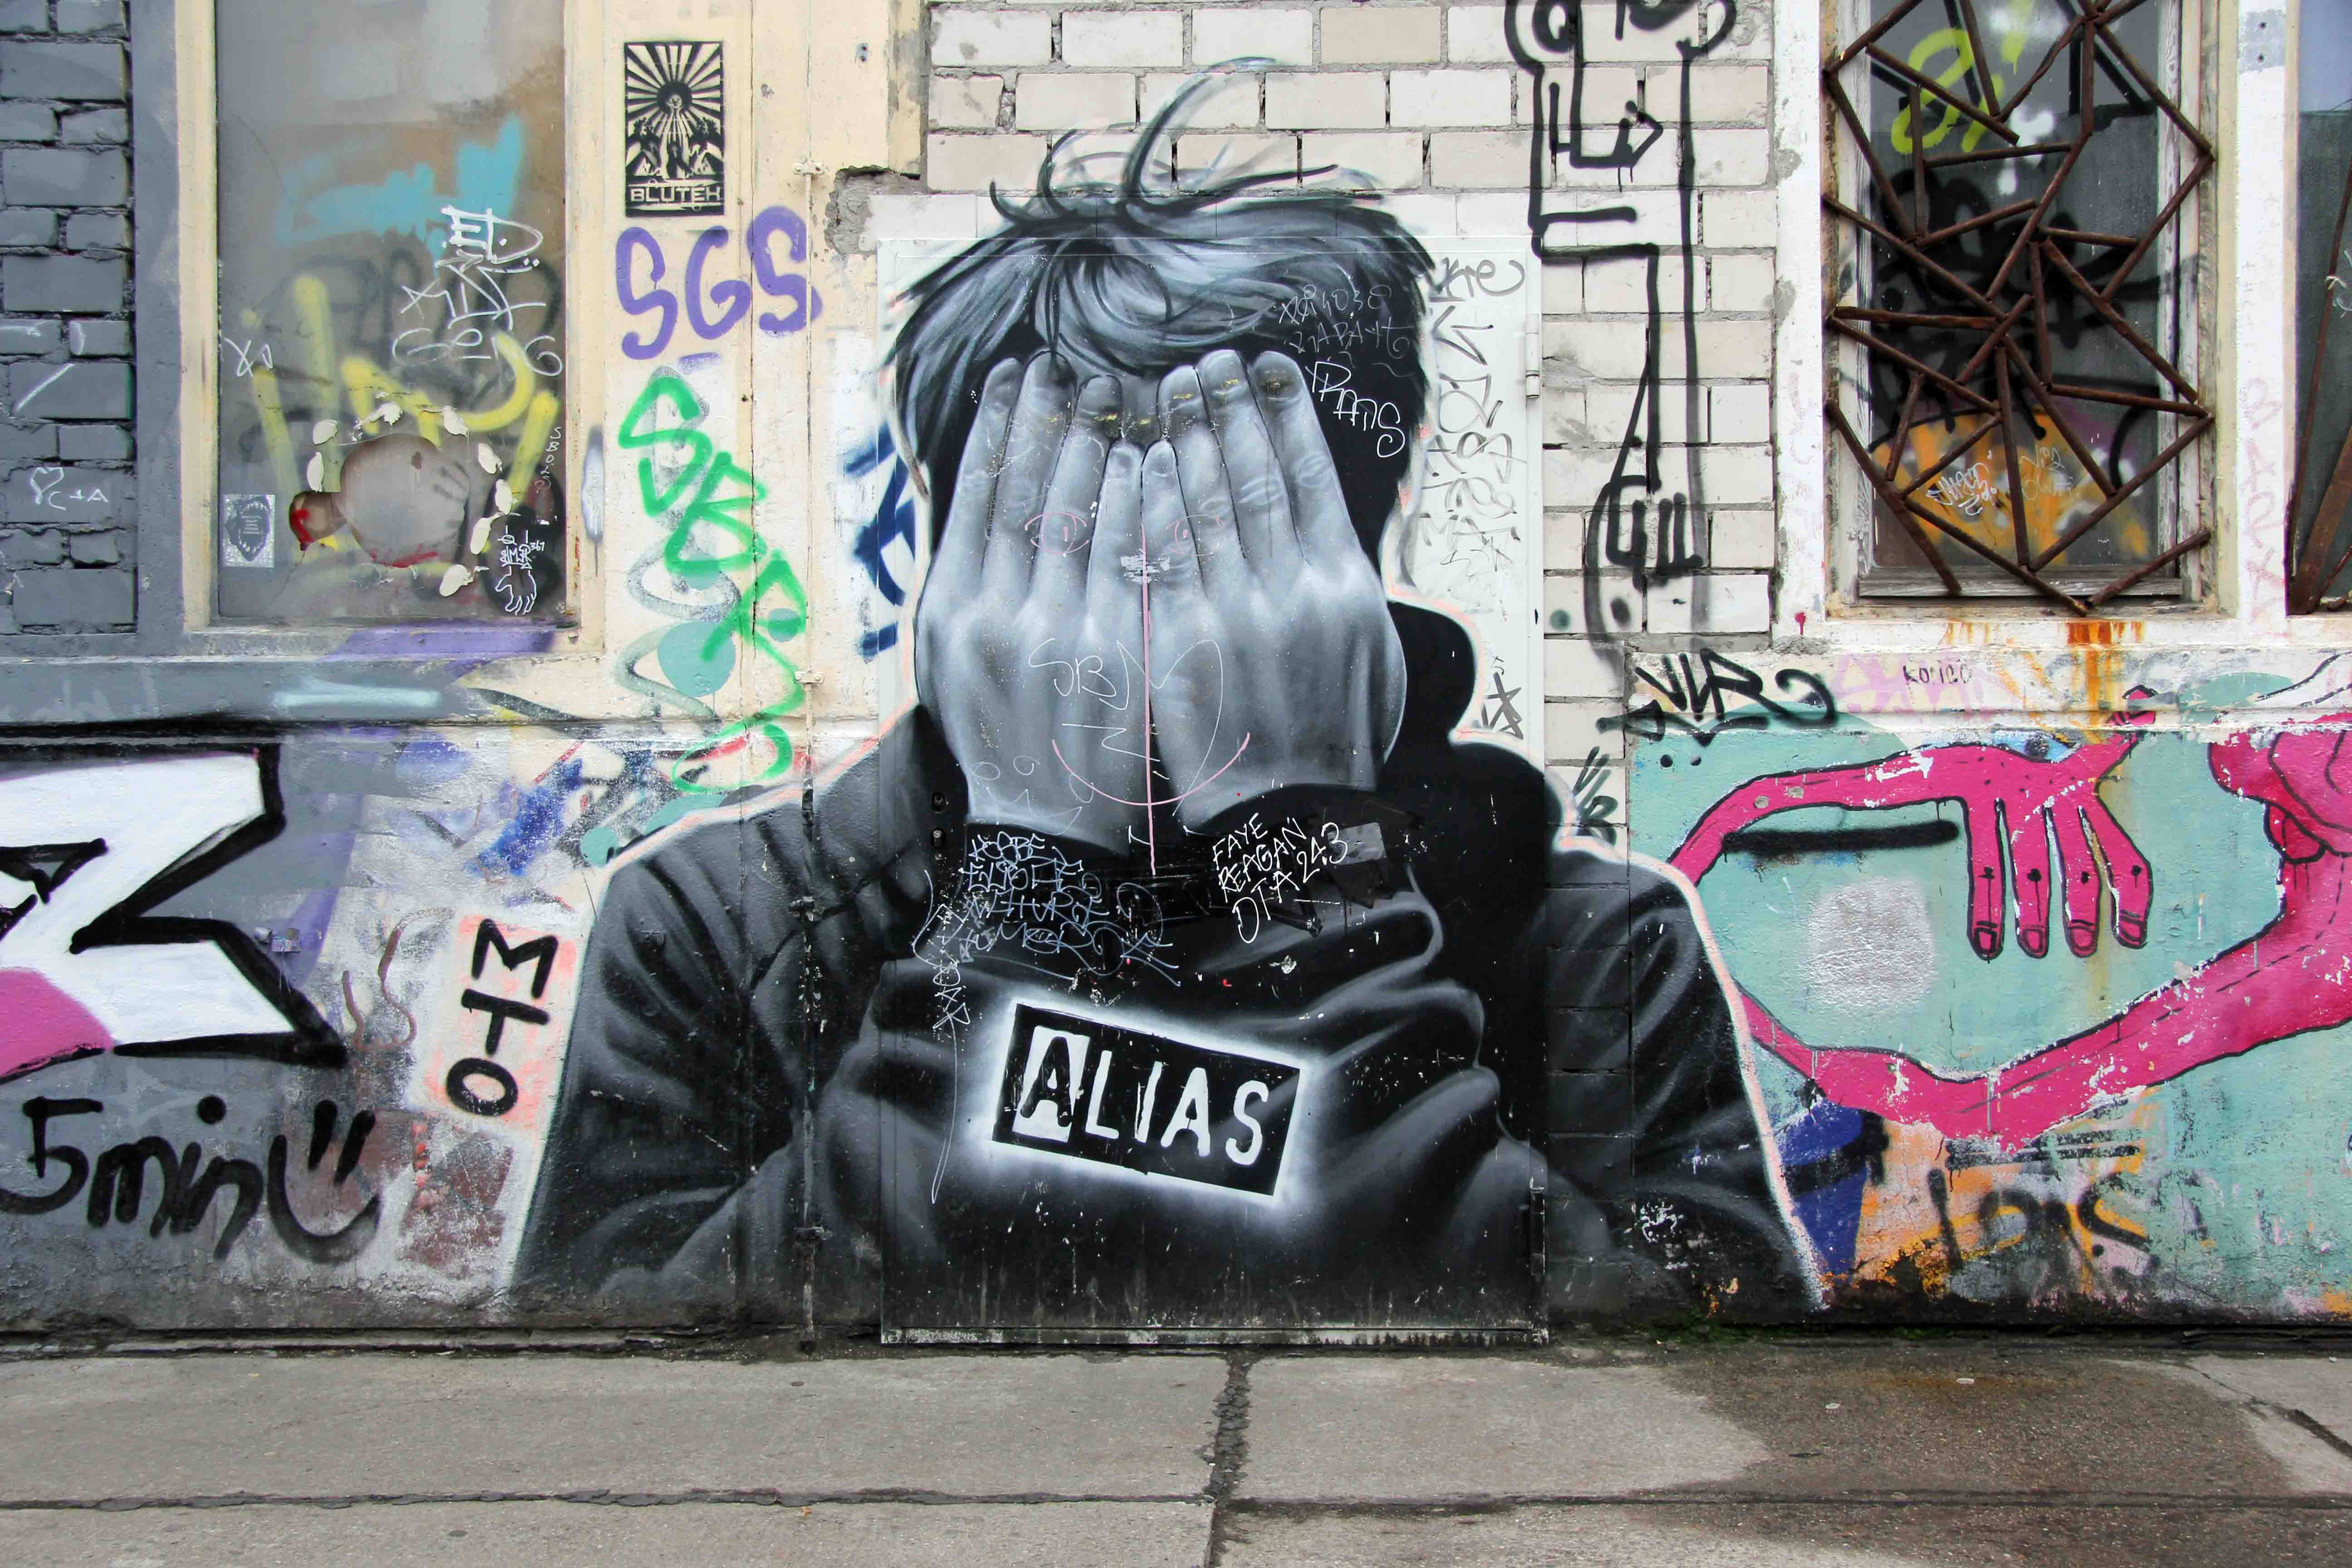 ALIAS - Street Art by MTO in Berlin